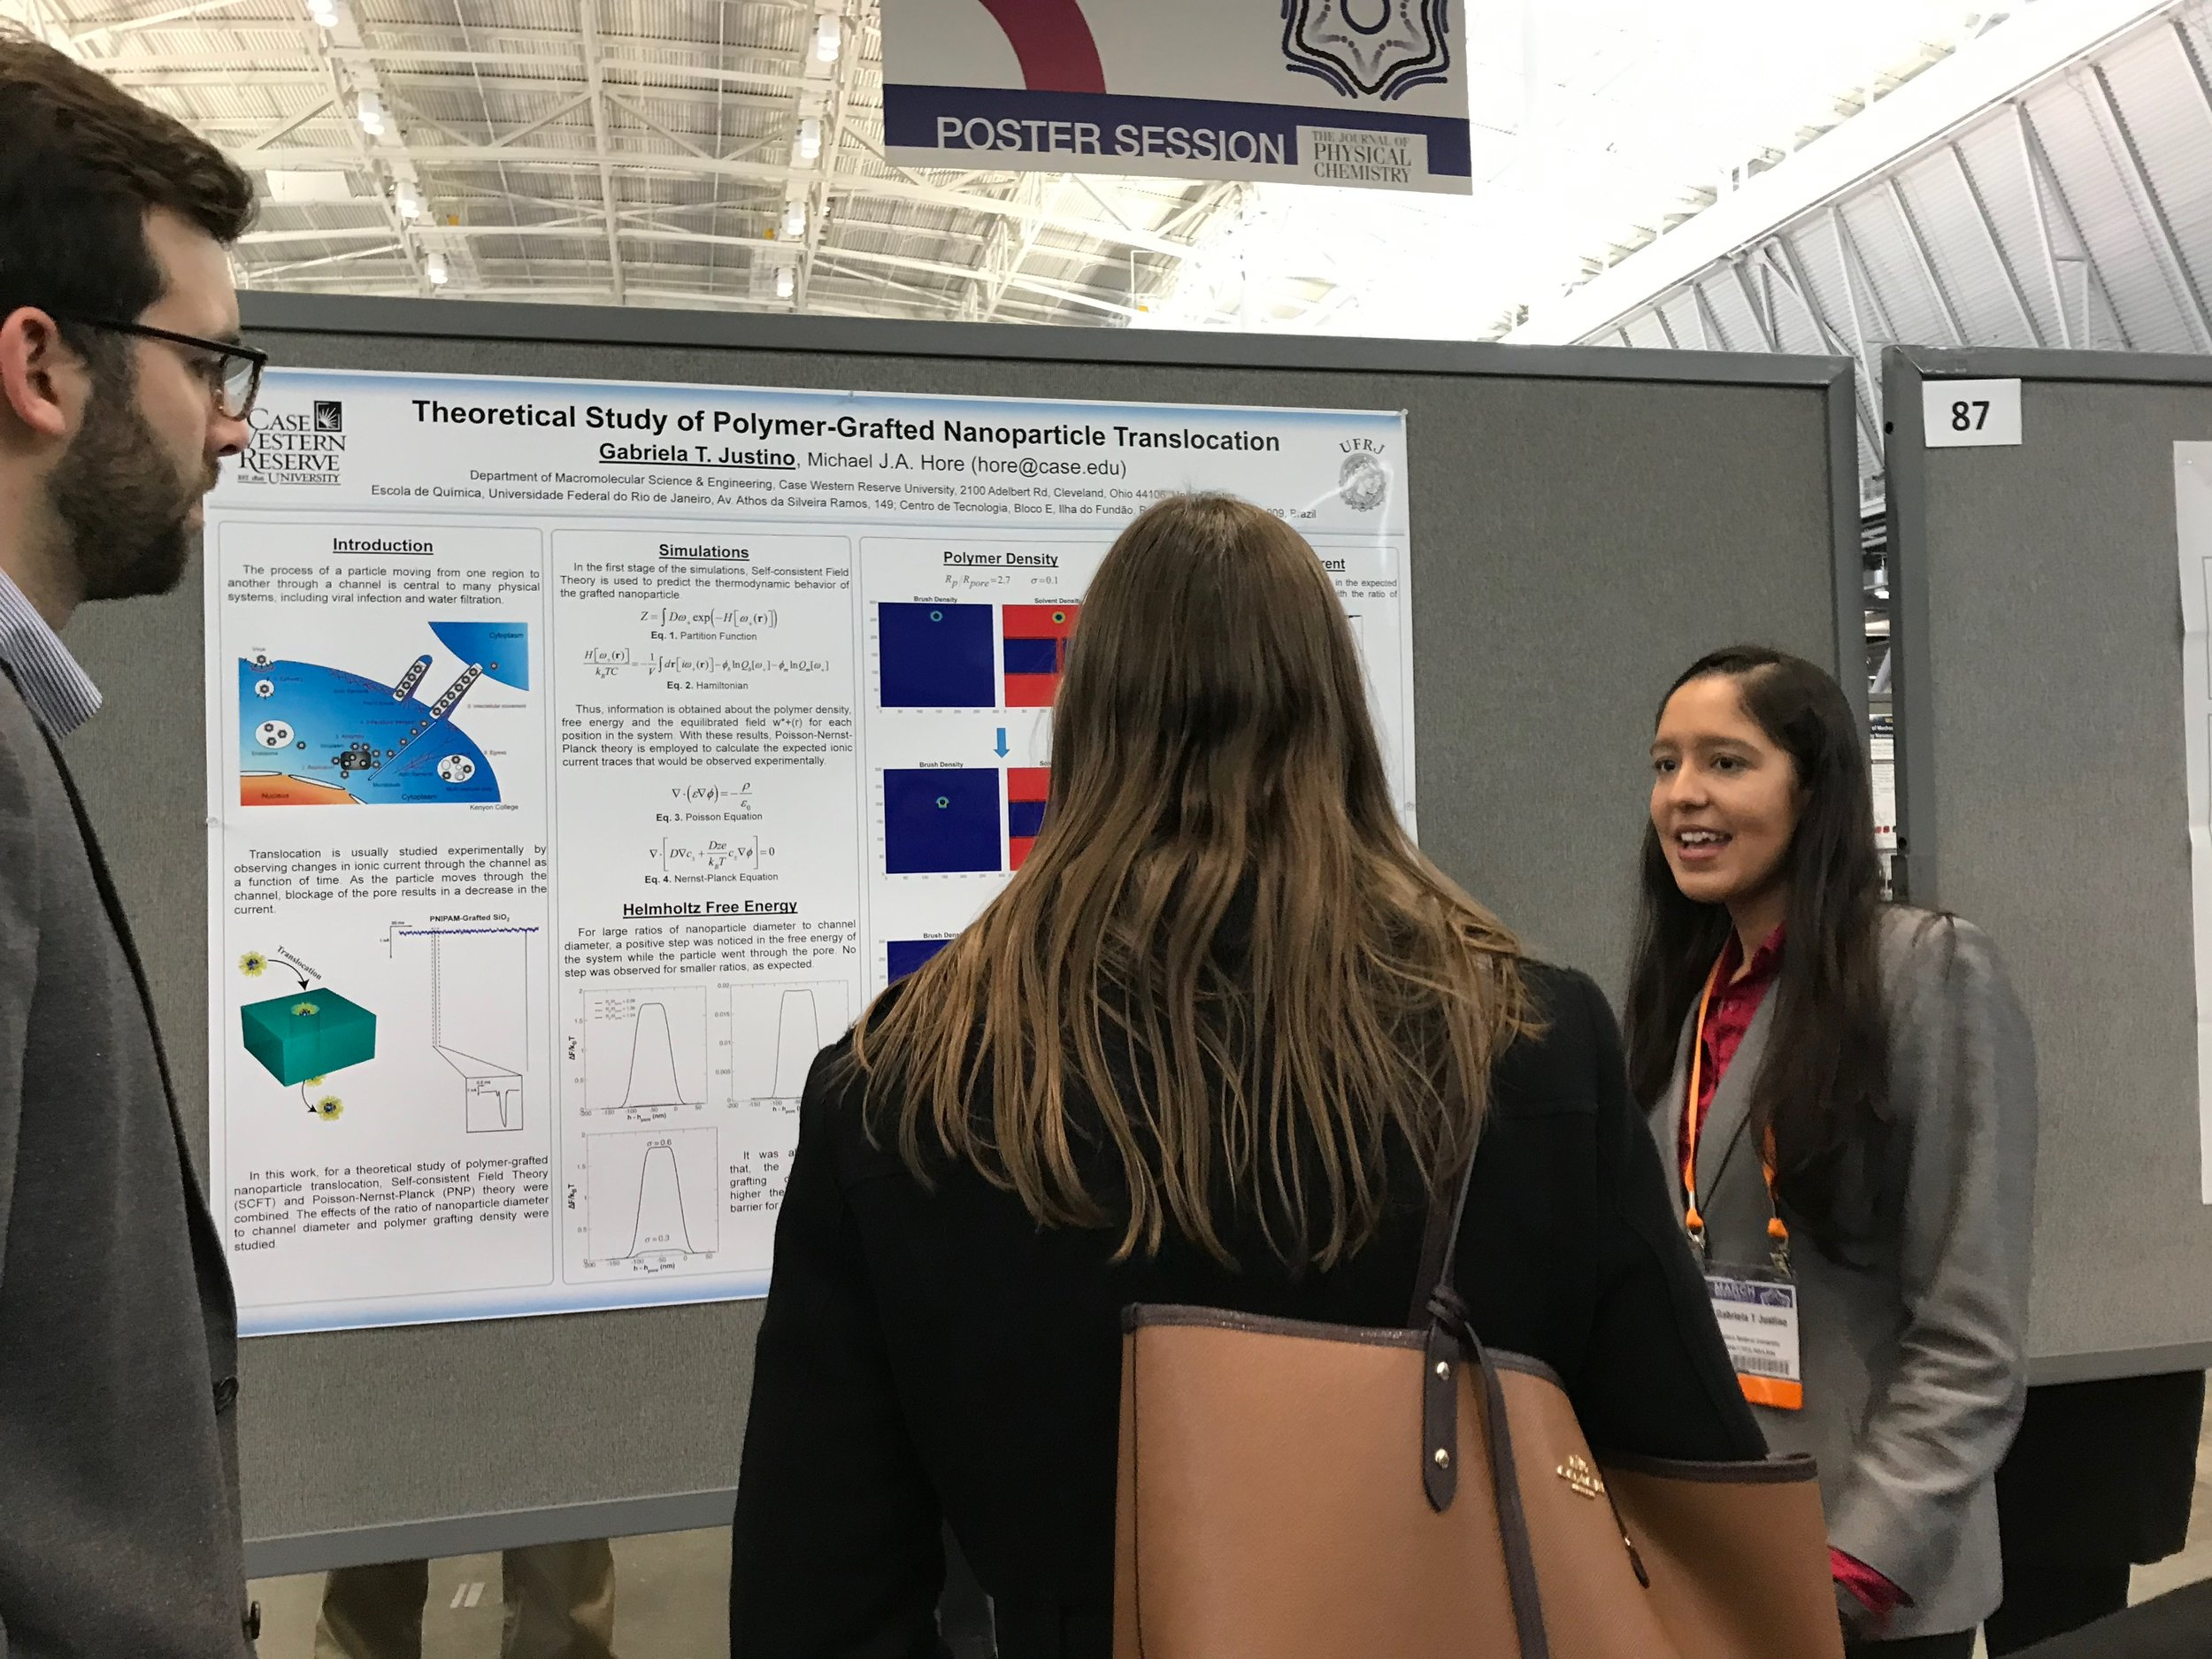 2019 APS March Meeting - Boston, MAGabriela Justino presents her research poster.